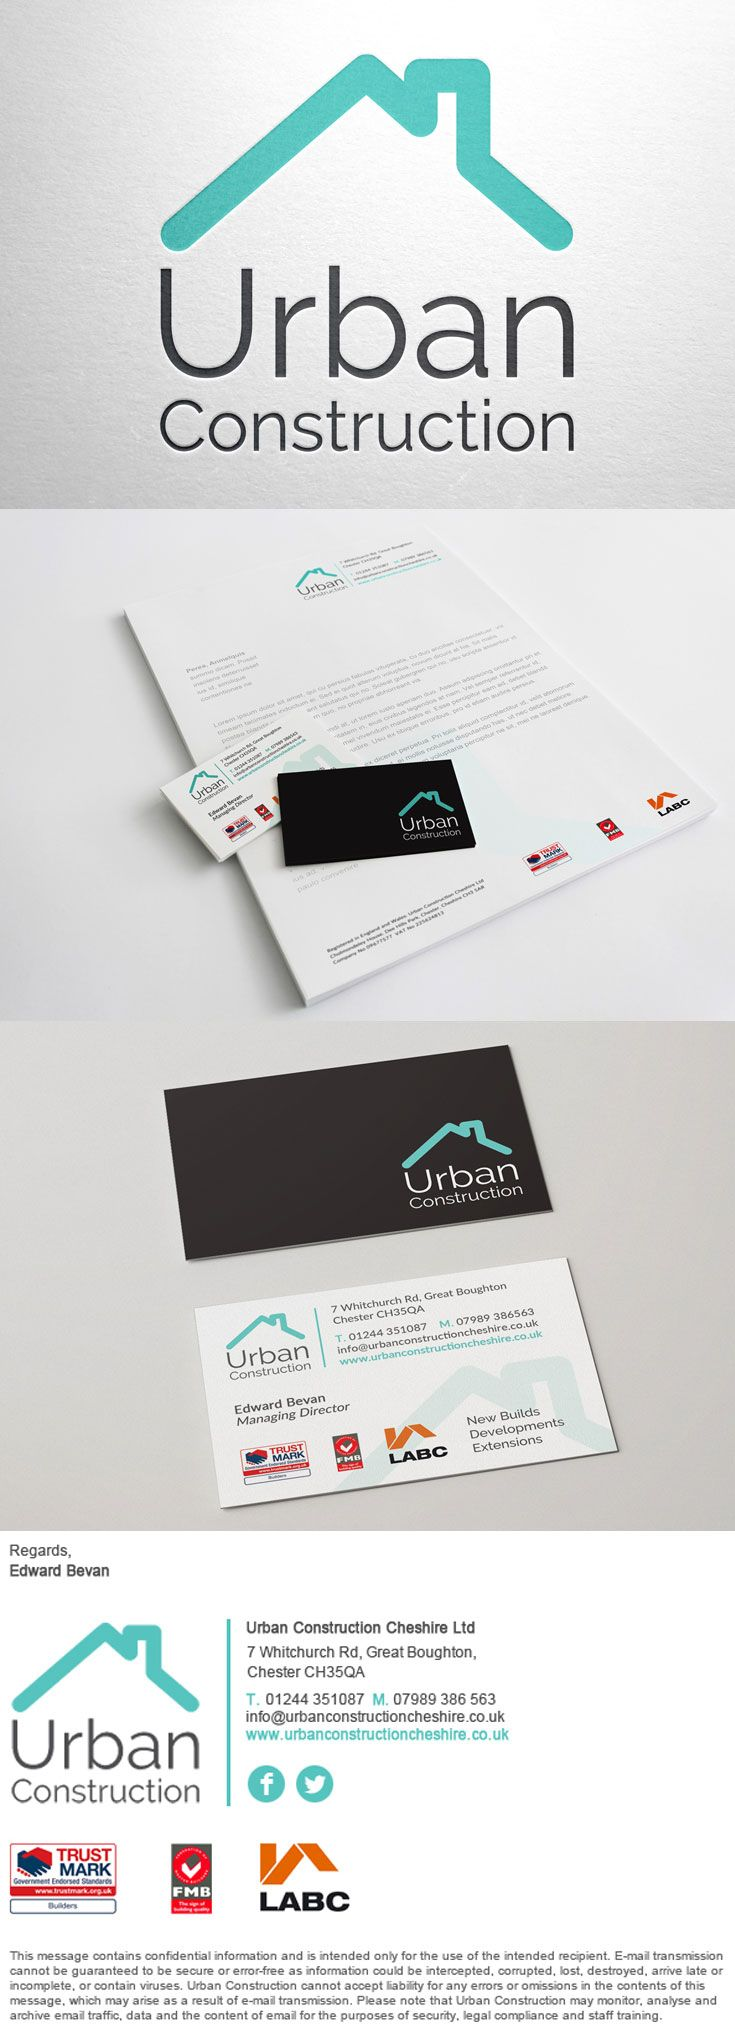 Construction logo stationery business card and e signature construction logo stationery business card and e signature design for urban construction cheshire magicingreecefo Images